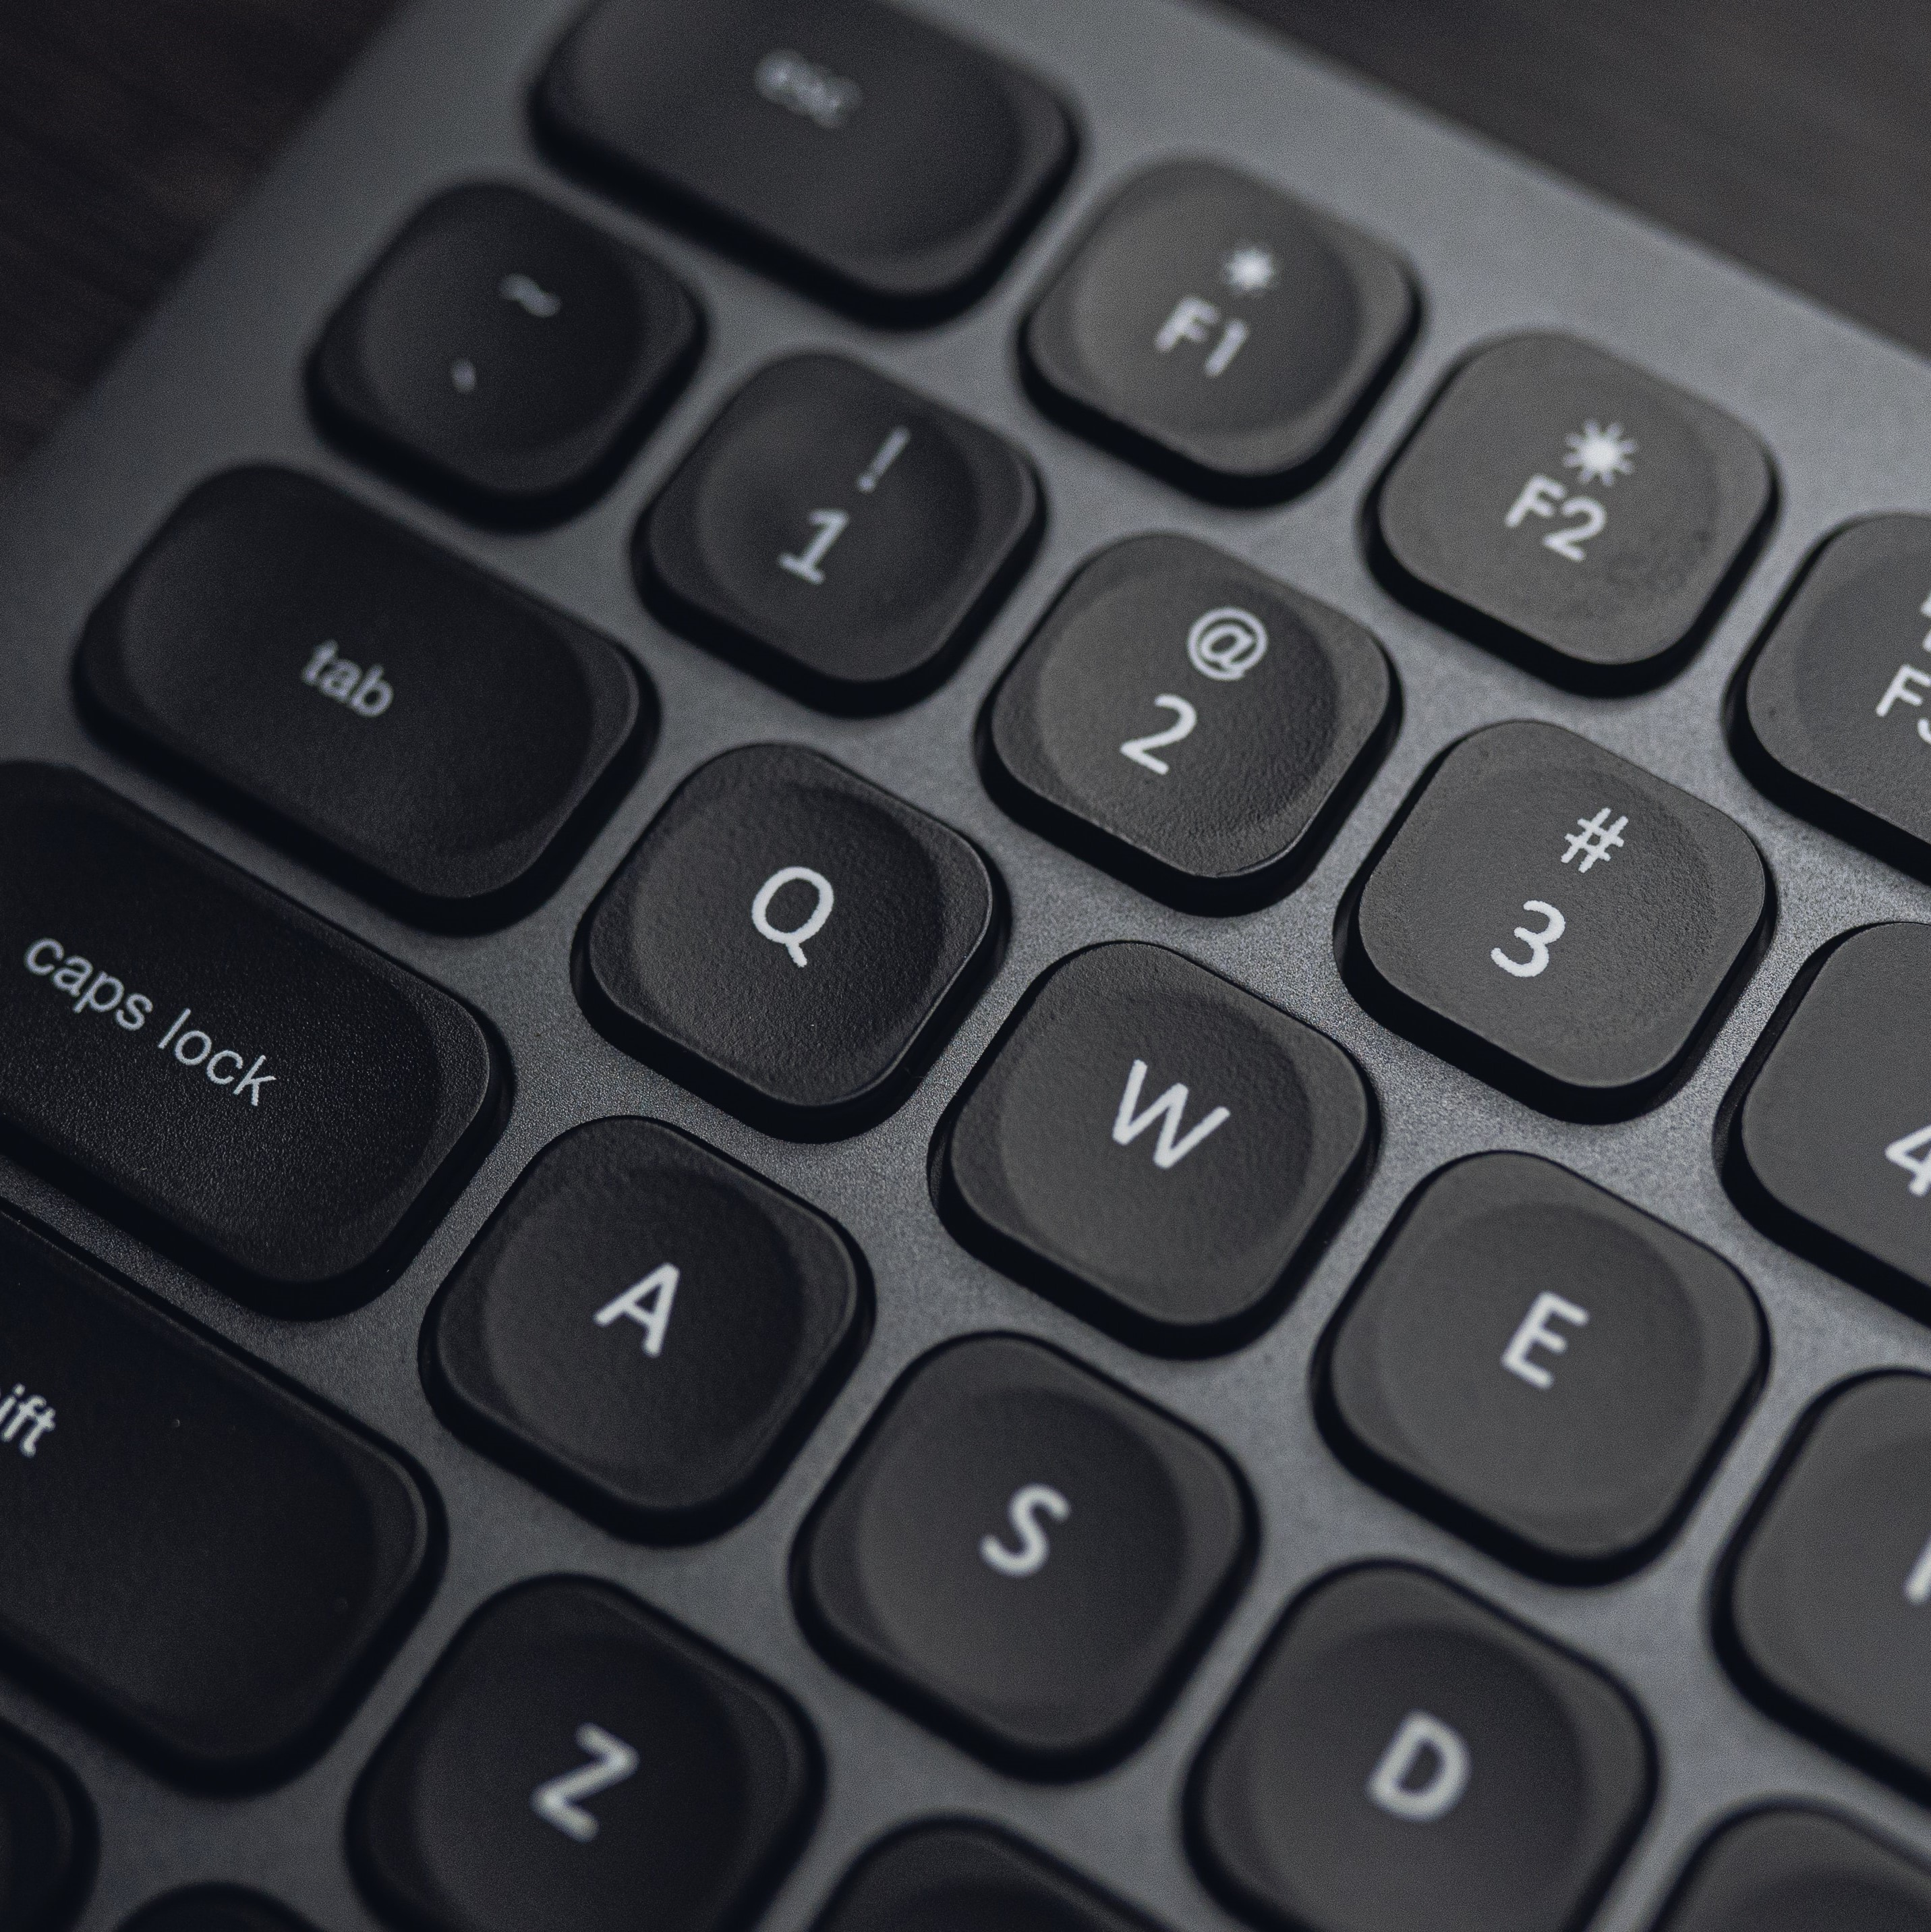 close up picture of computer keyboard